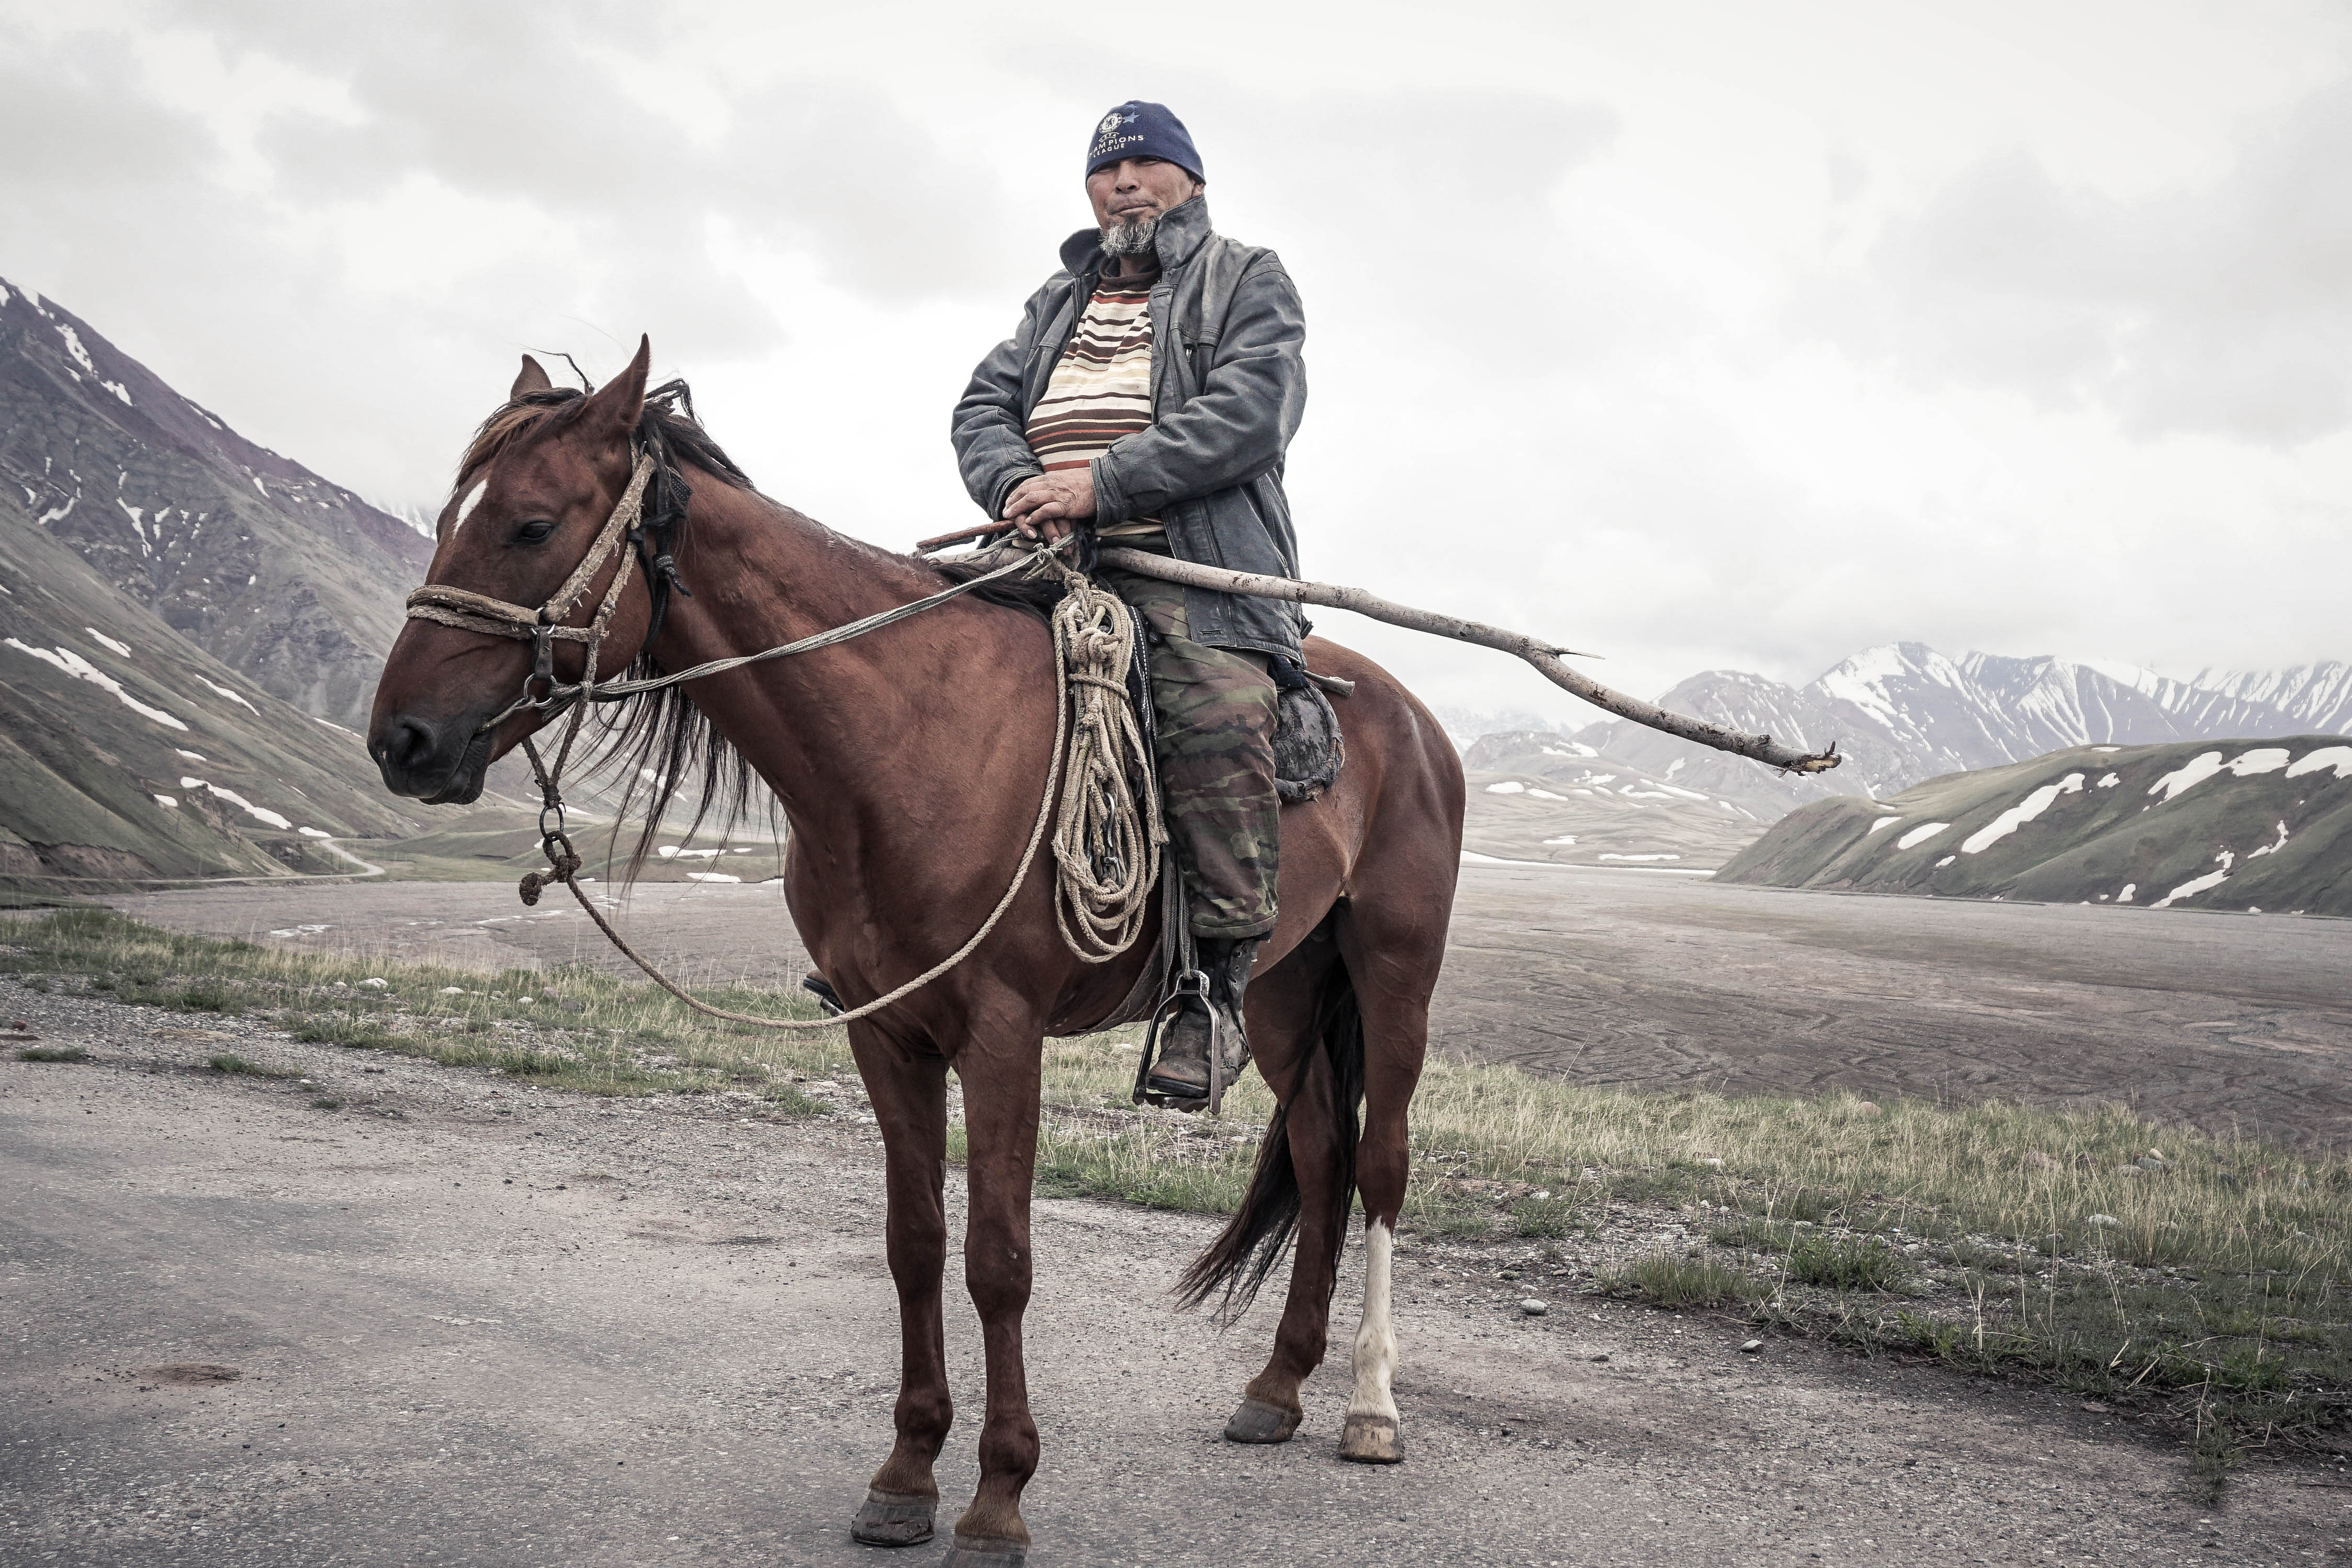 A proud Pamiri man on horseback stops to chat.